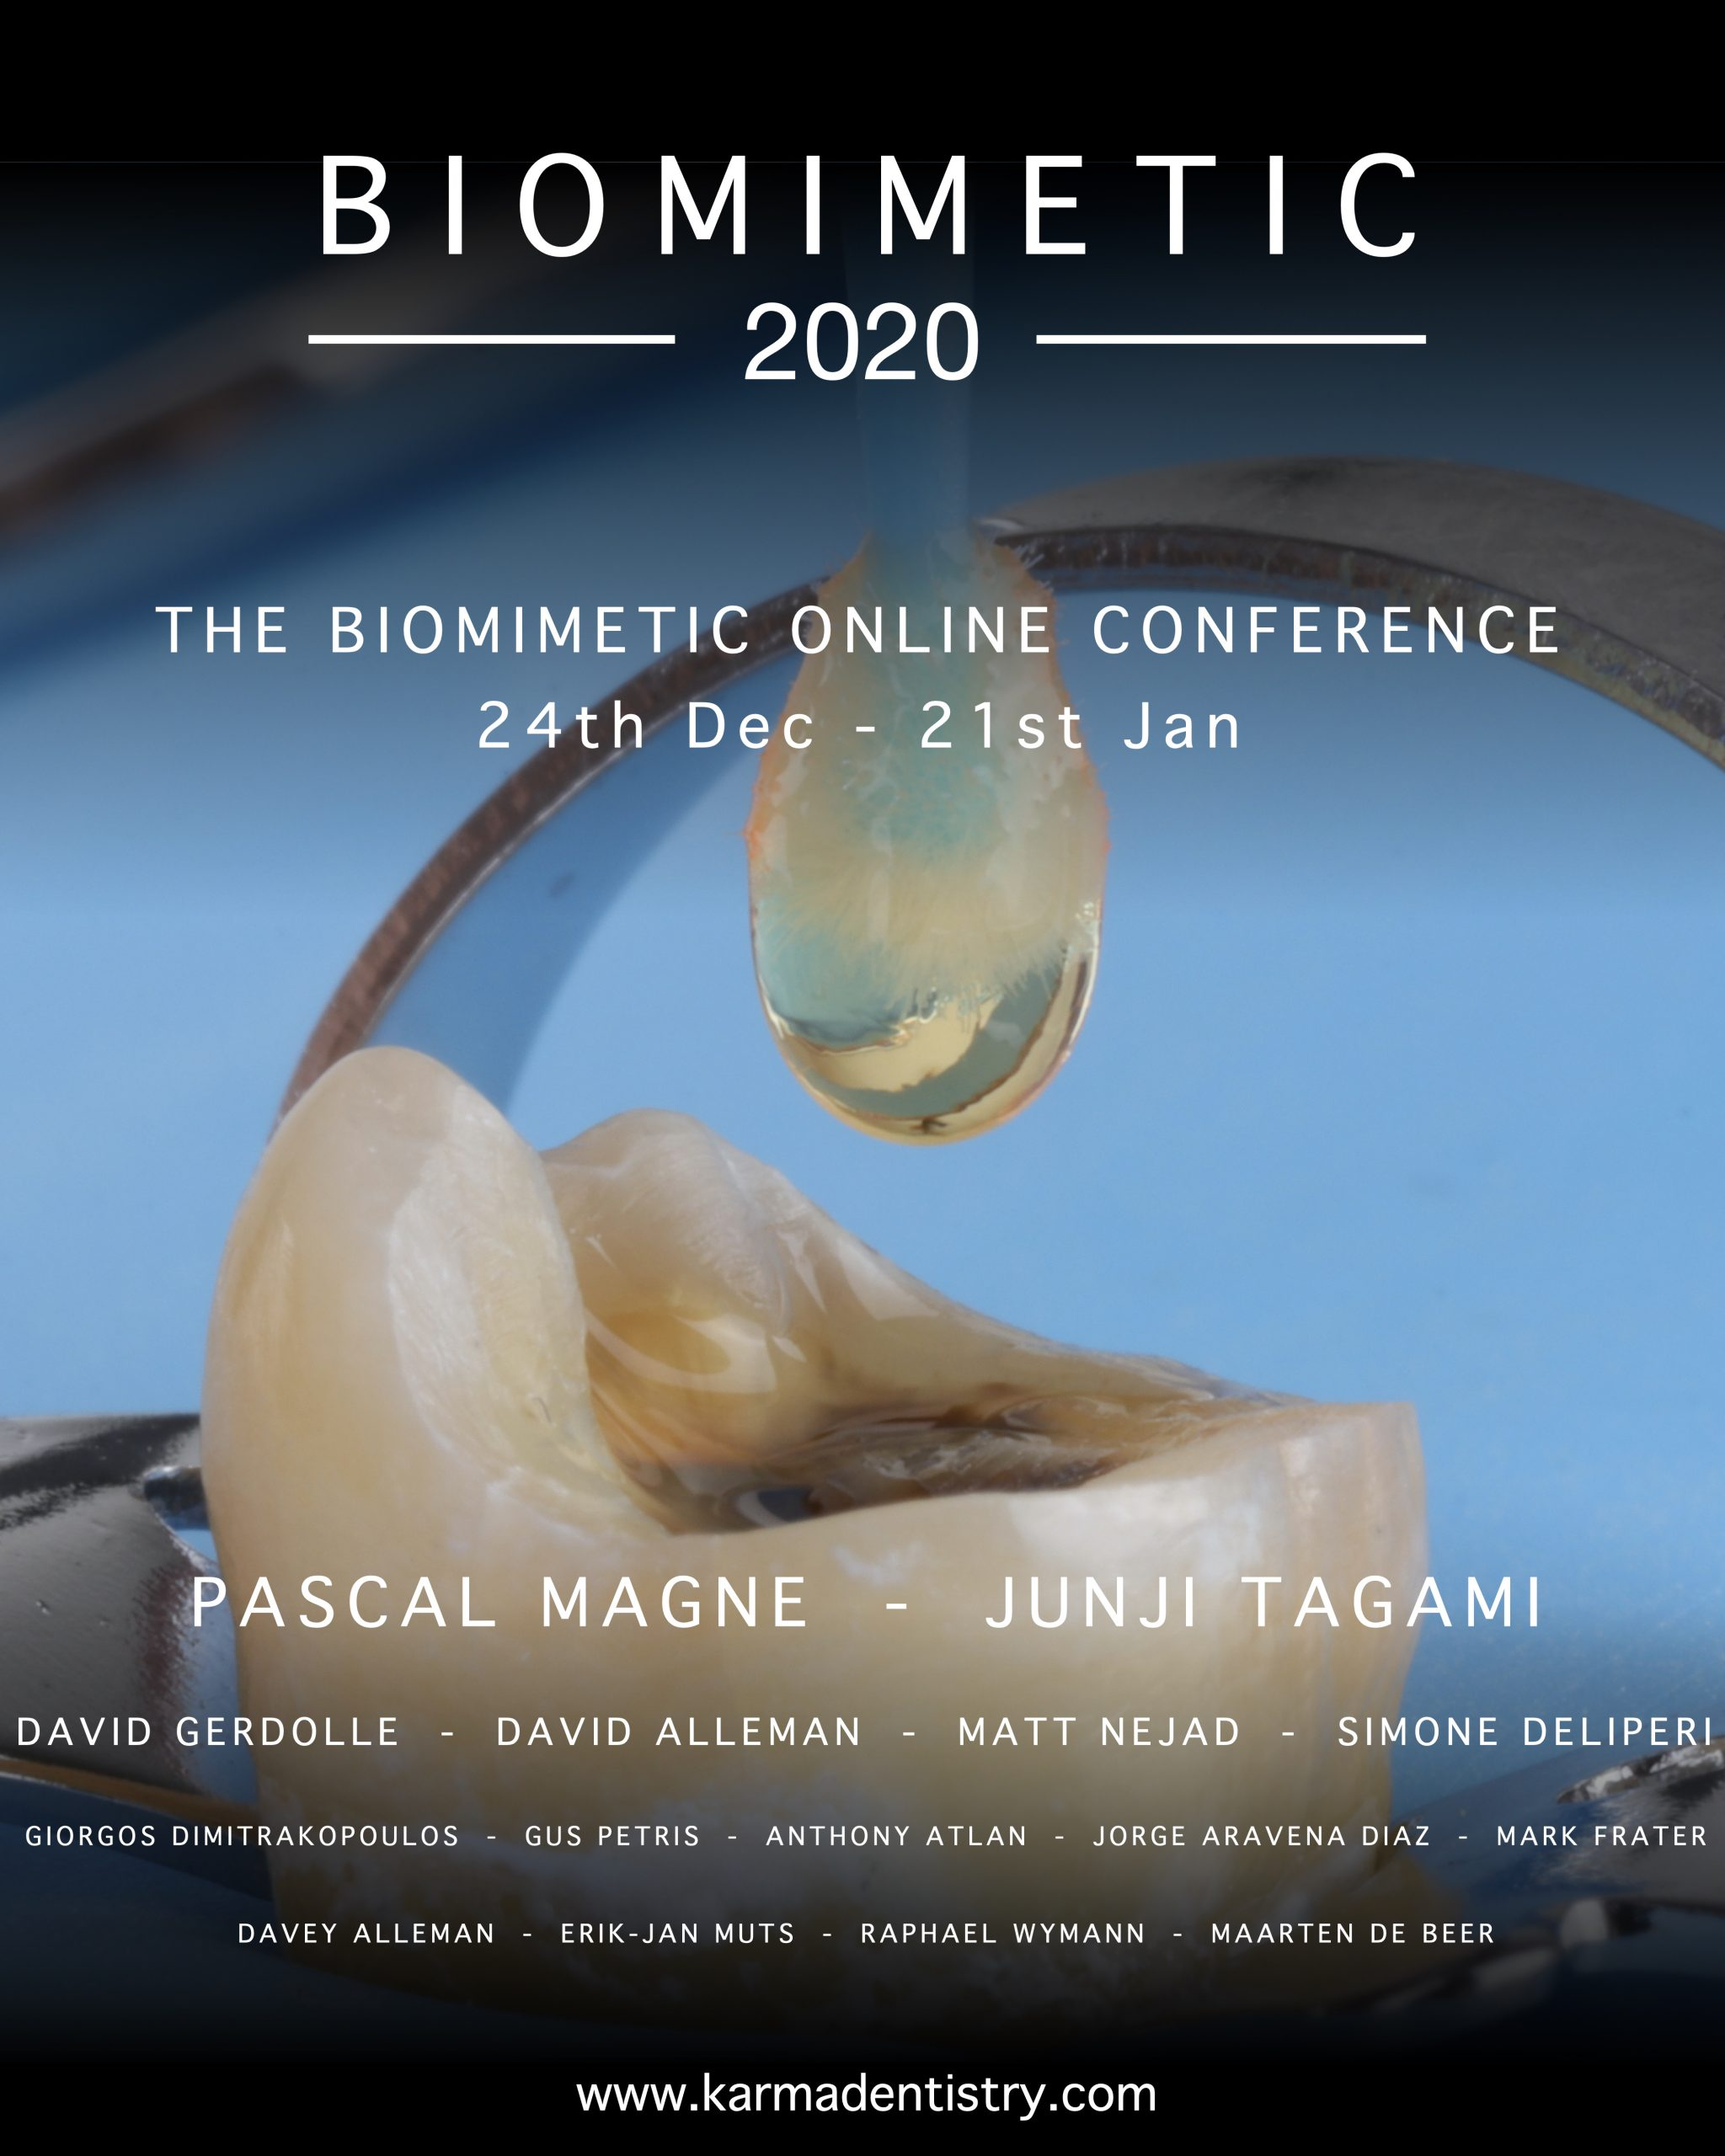 Biomimetic 2020 – THE FIRST ONLINE BIOMIMETIC CONFERENCE